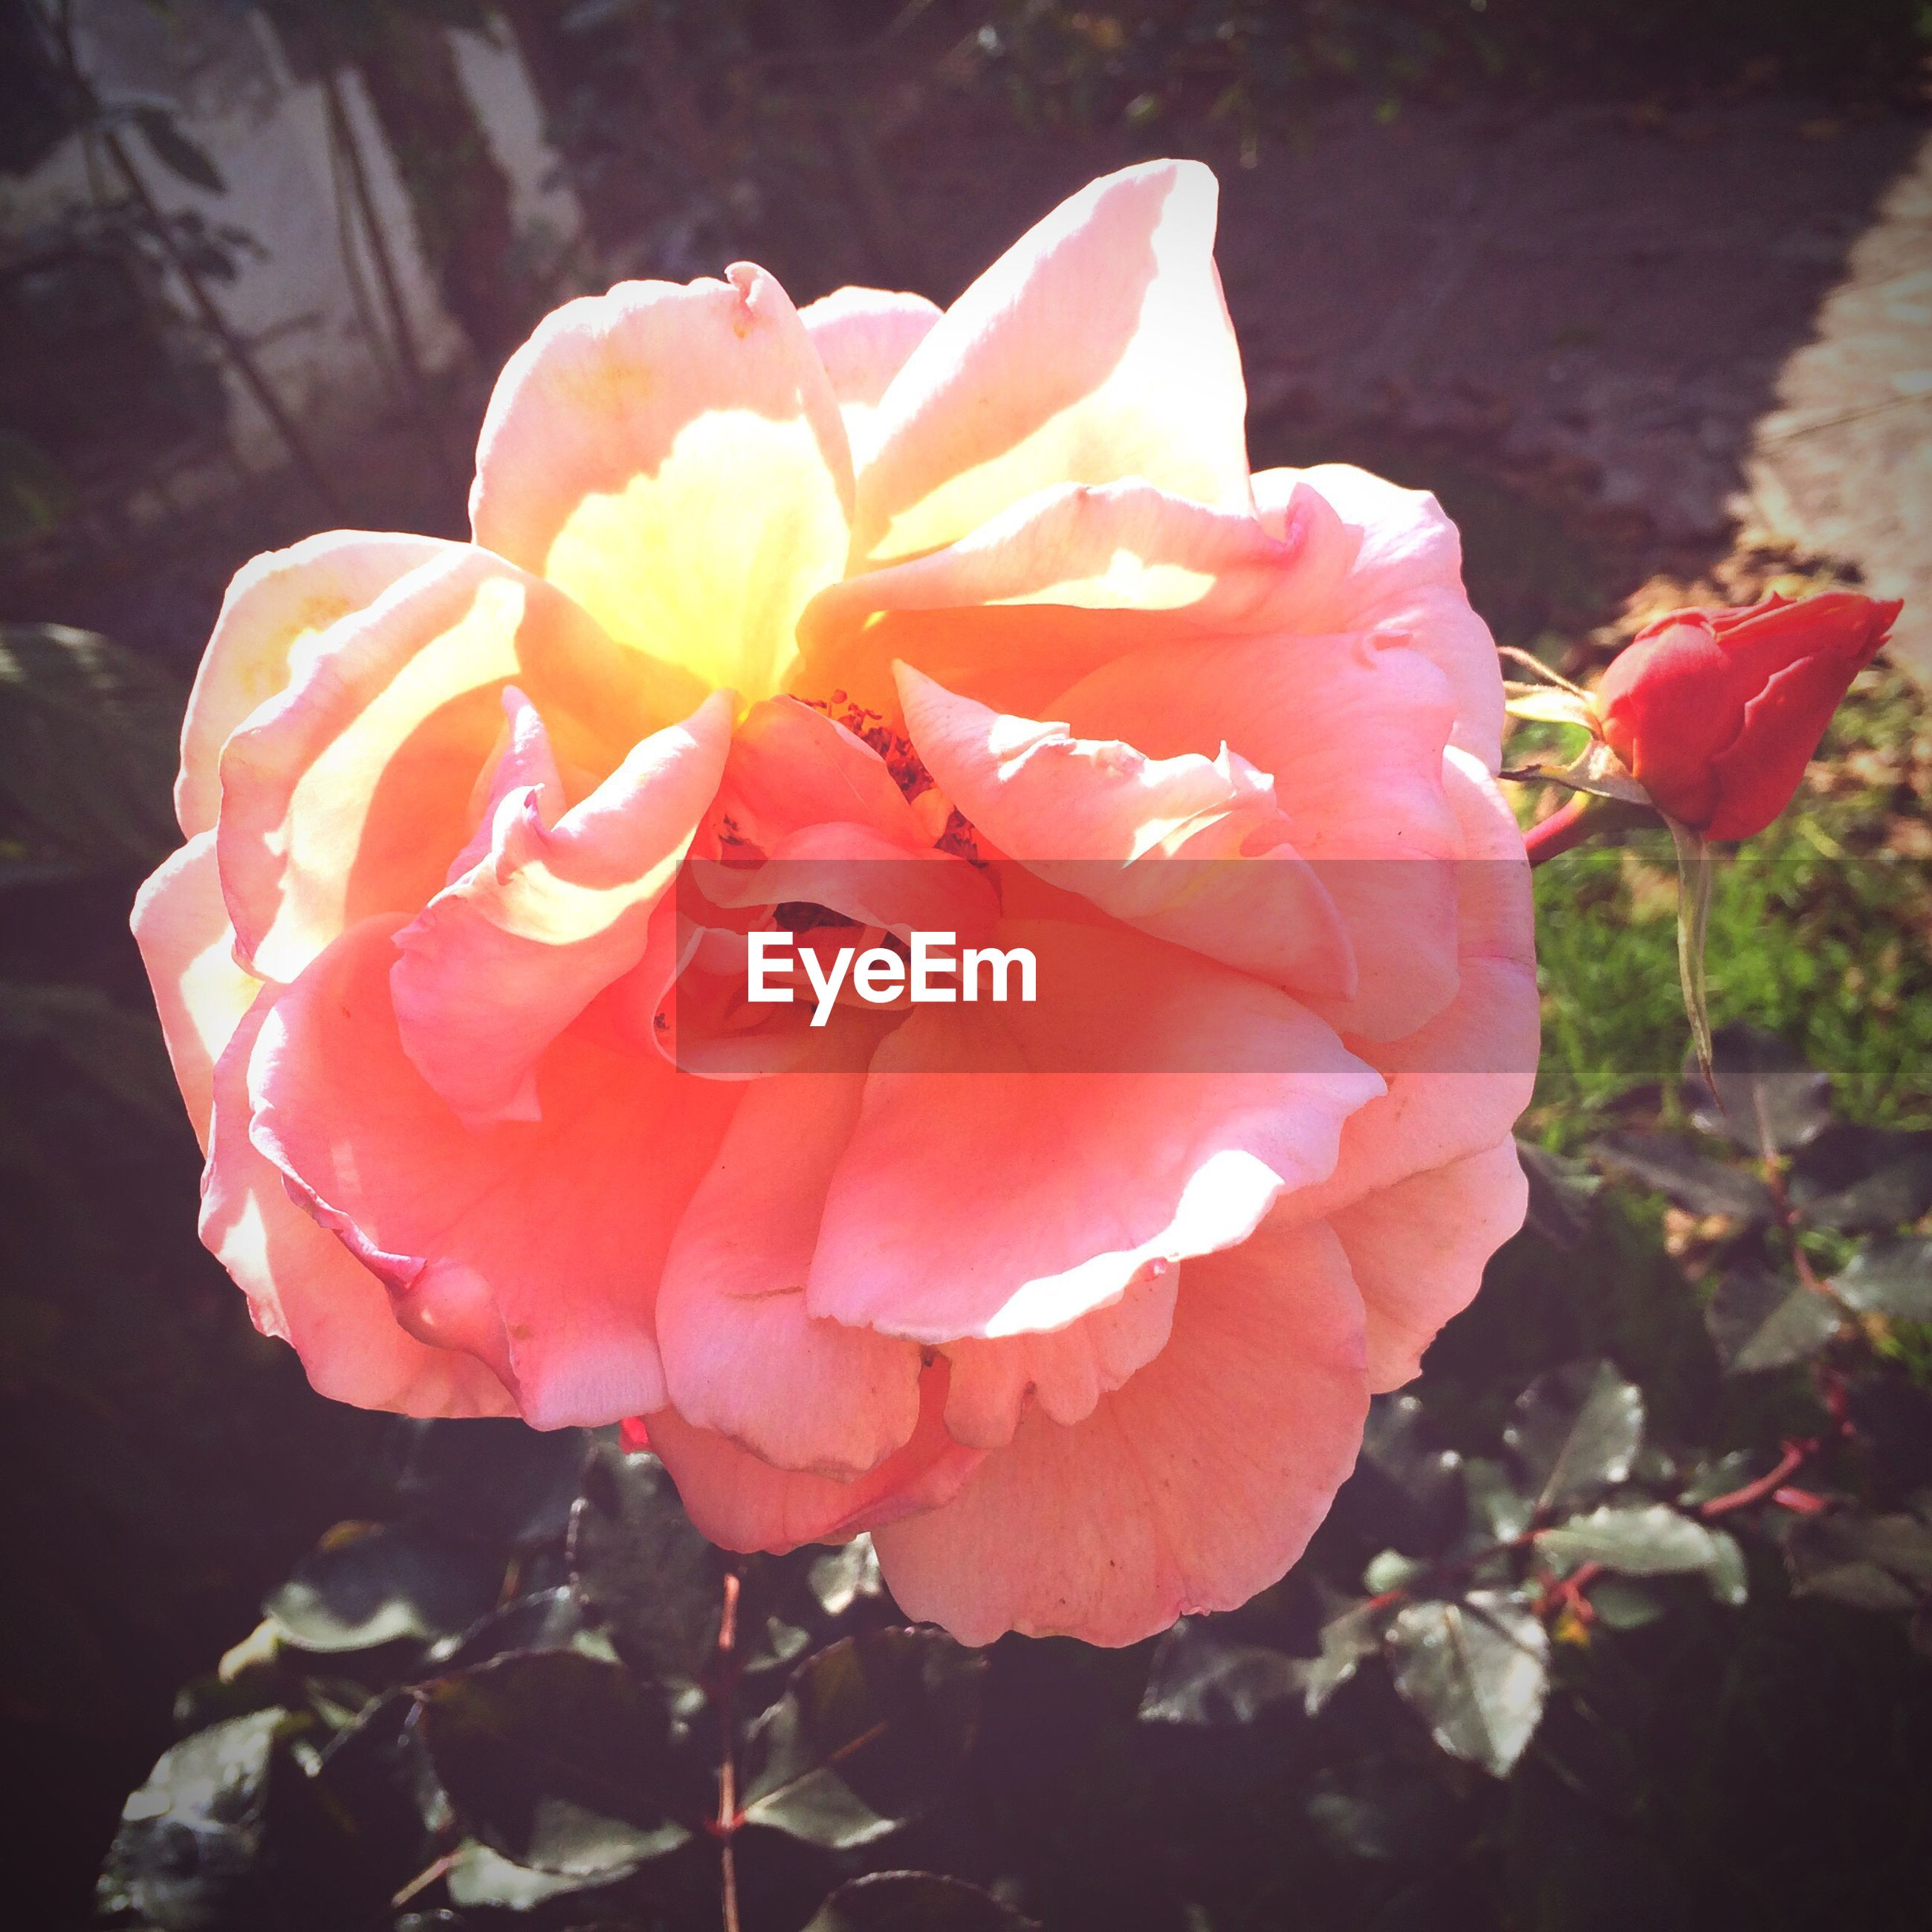 flower, petal, flower head, fragility, freshness, rose - flower, beauty in nature, growth, blooming, close-up, nature, single flower, plant, in bloom, red, focus on foreground, rose, blossom, pink color, no people